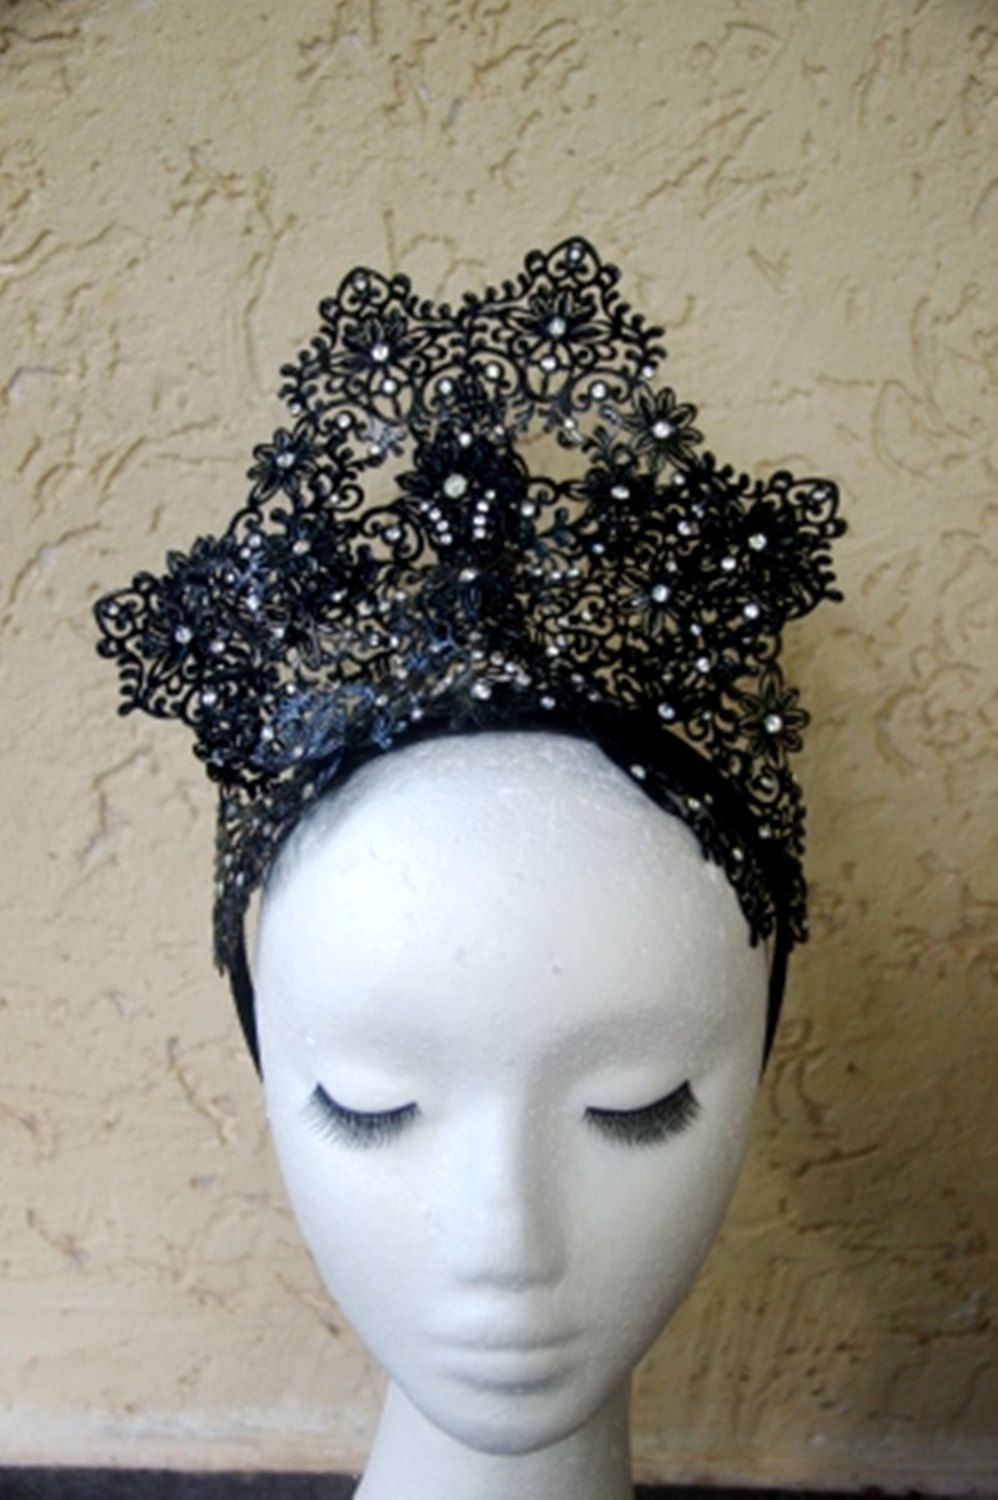 Desinger metal lace fascinator one of a kind. Black Crown with diamante  headband by TwistedInTheTropics on Etsy 49316a2b429